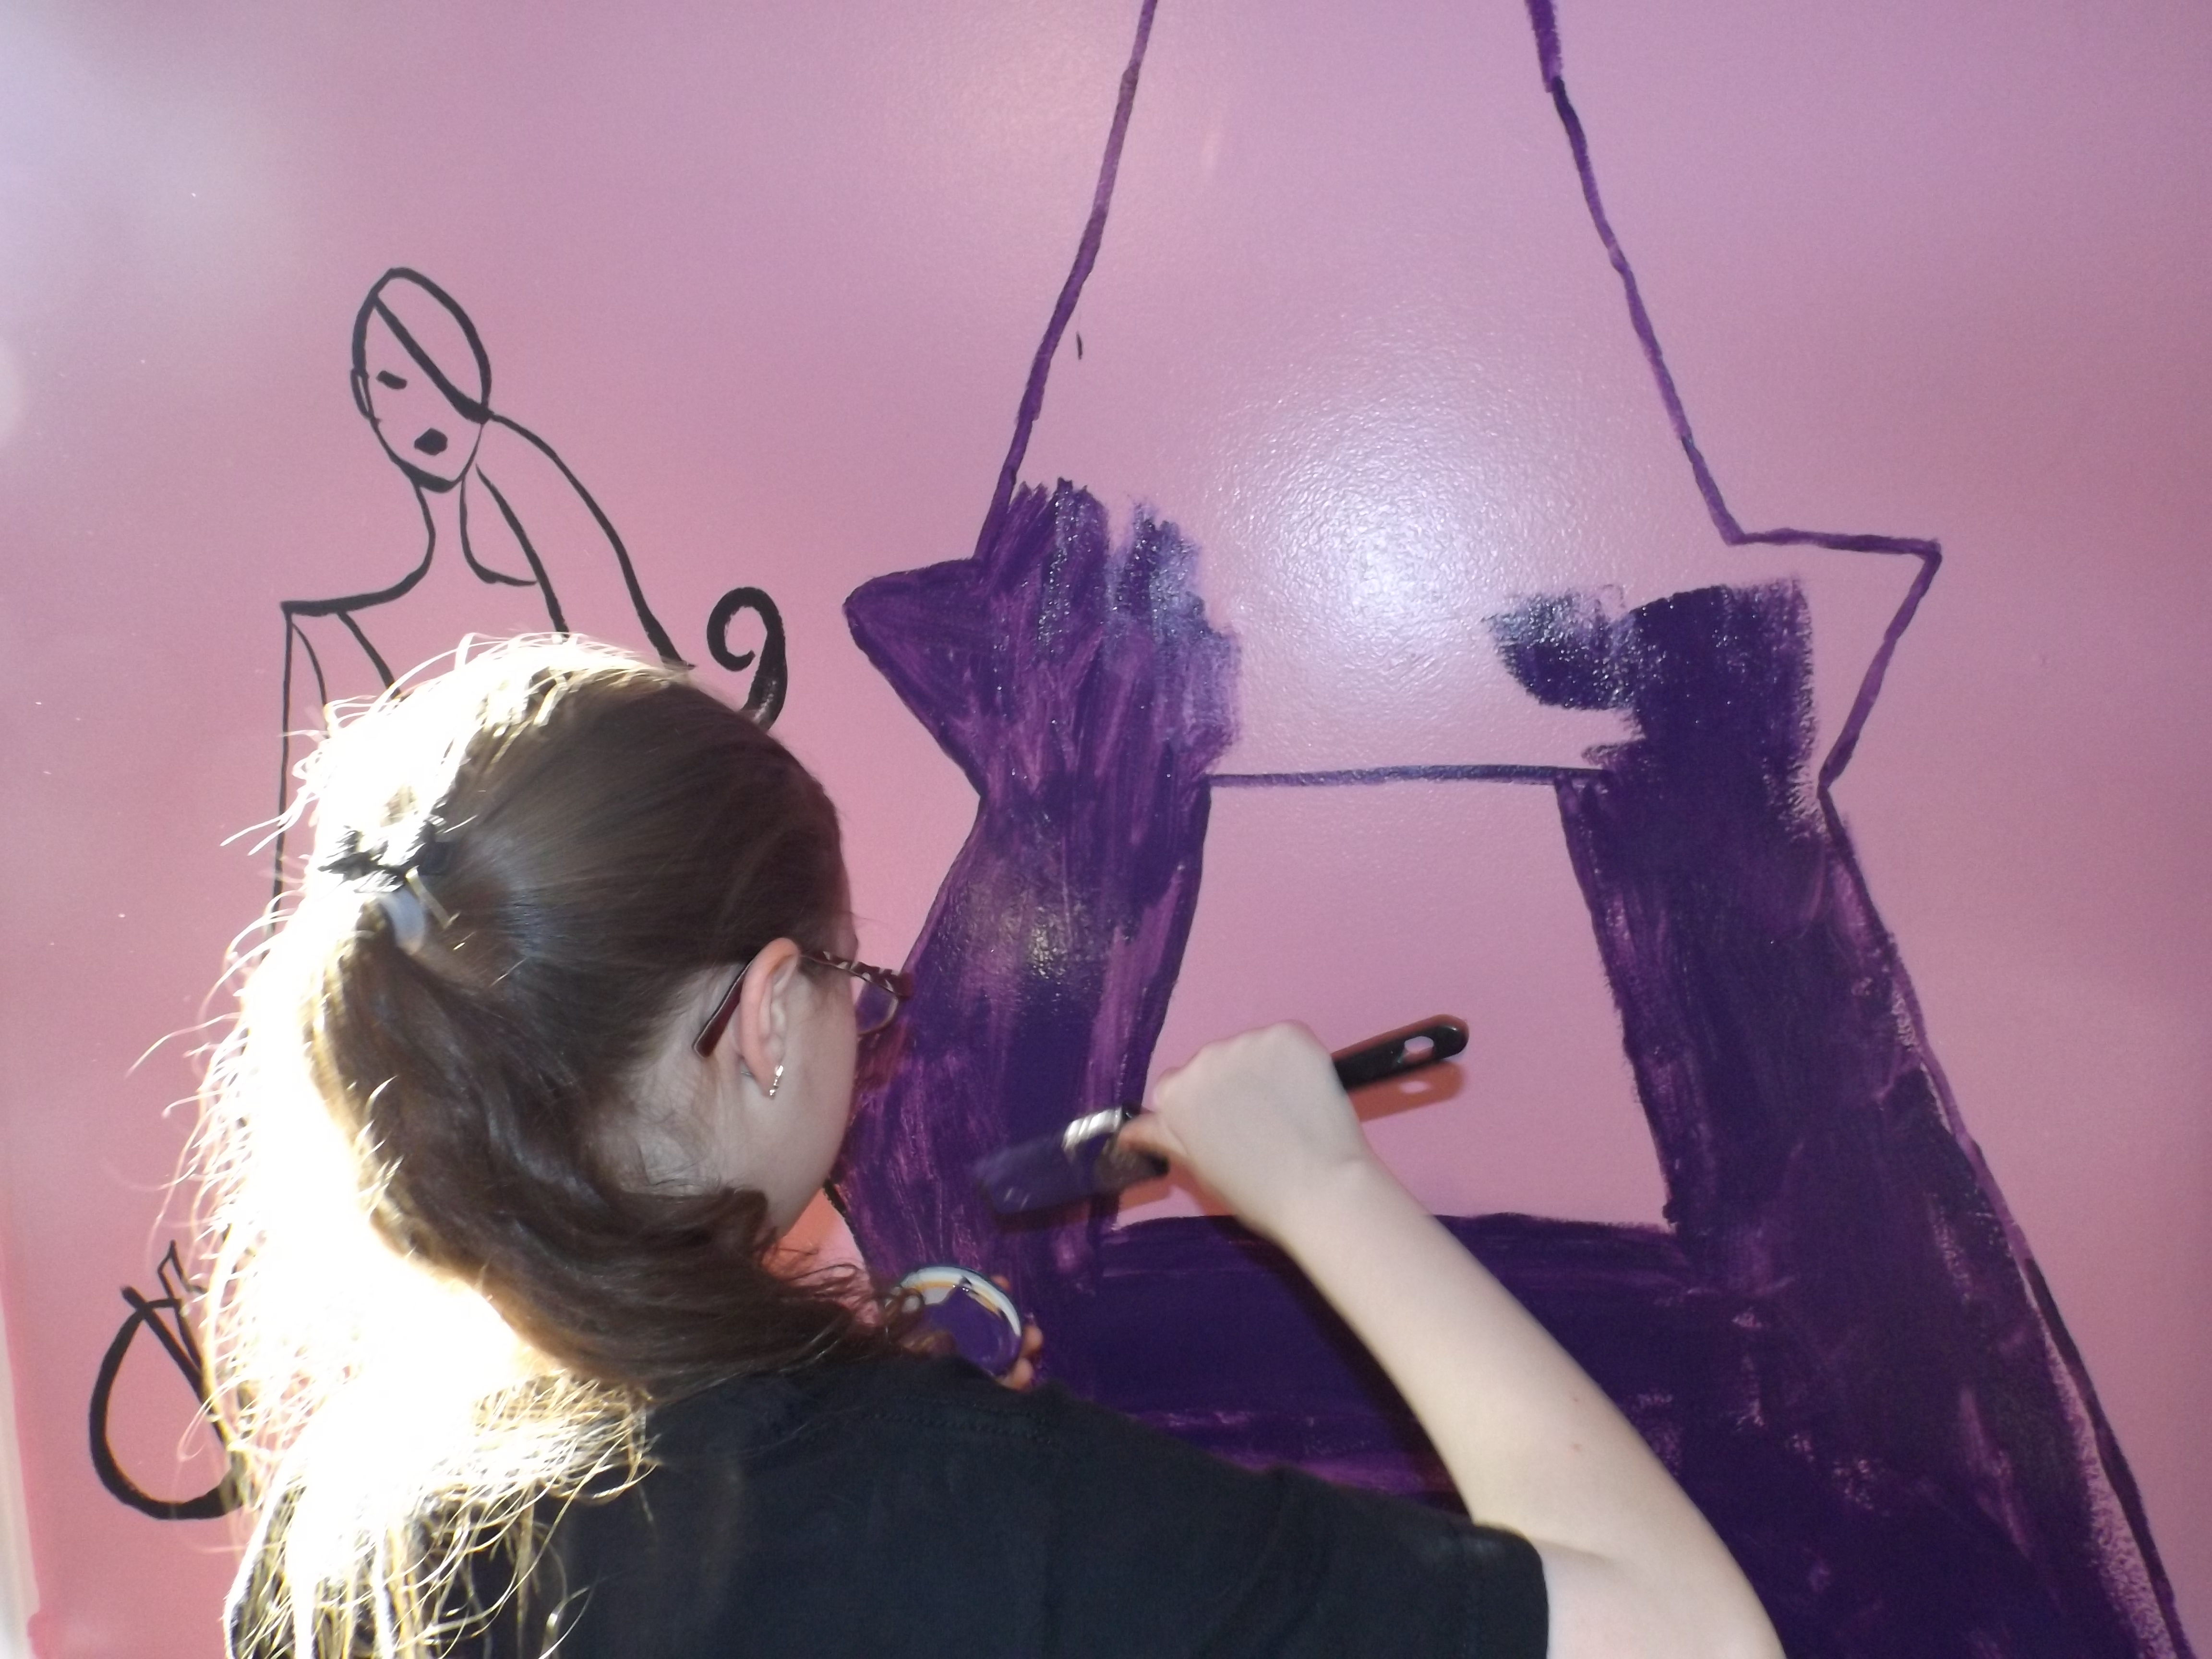 Erin paints the mural